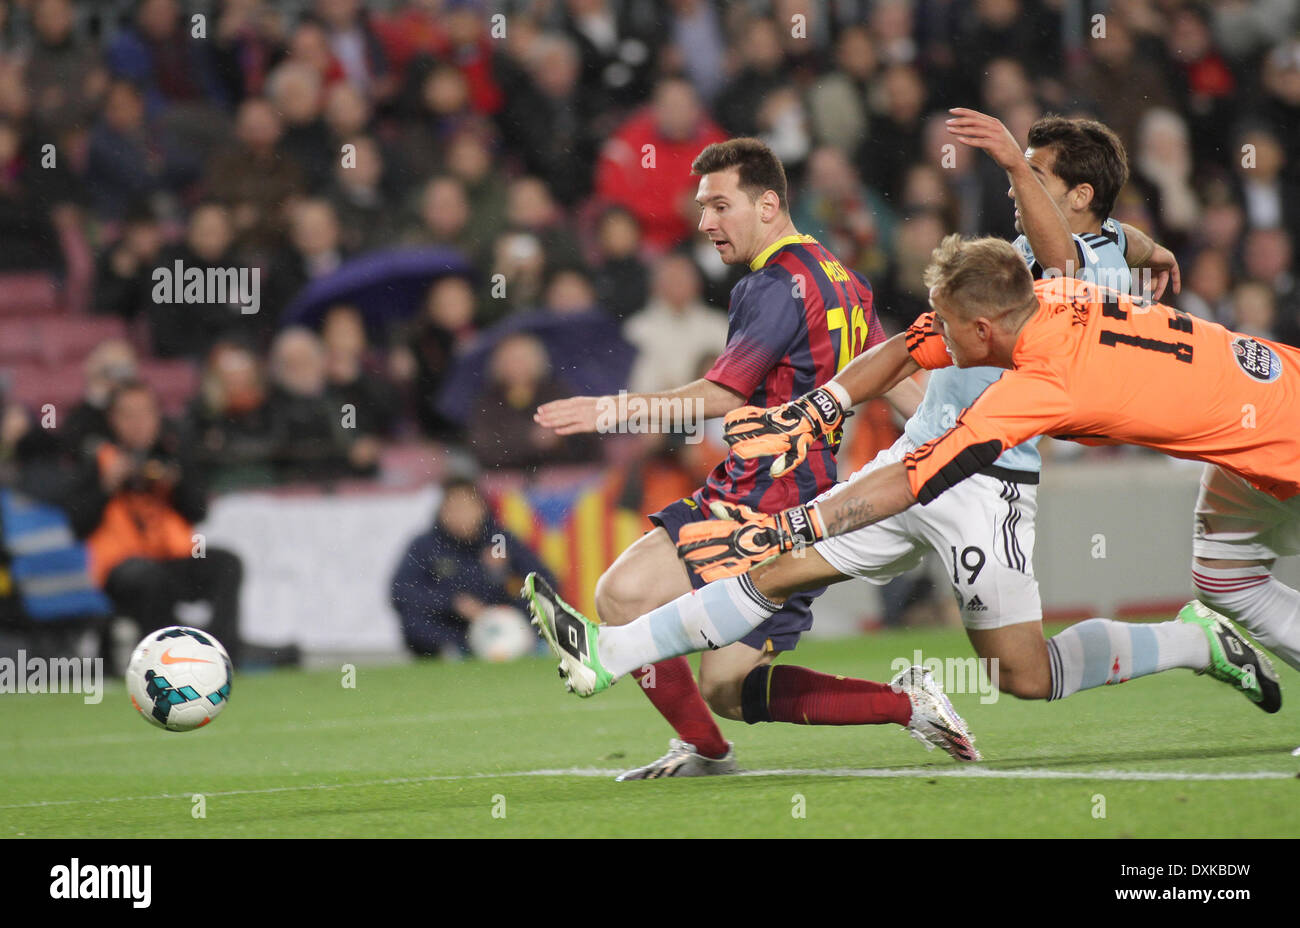 26.03.2014  Barcelona, Spain. Shots for a foal during the Liga BBVA game between Barcelona and Celta Vigo from Camp Nou - Stock Image